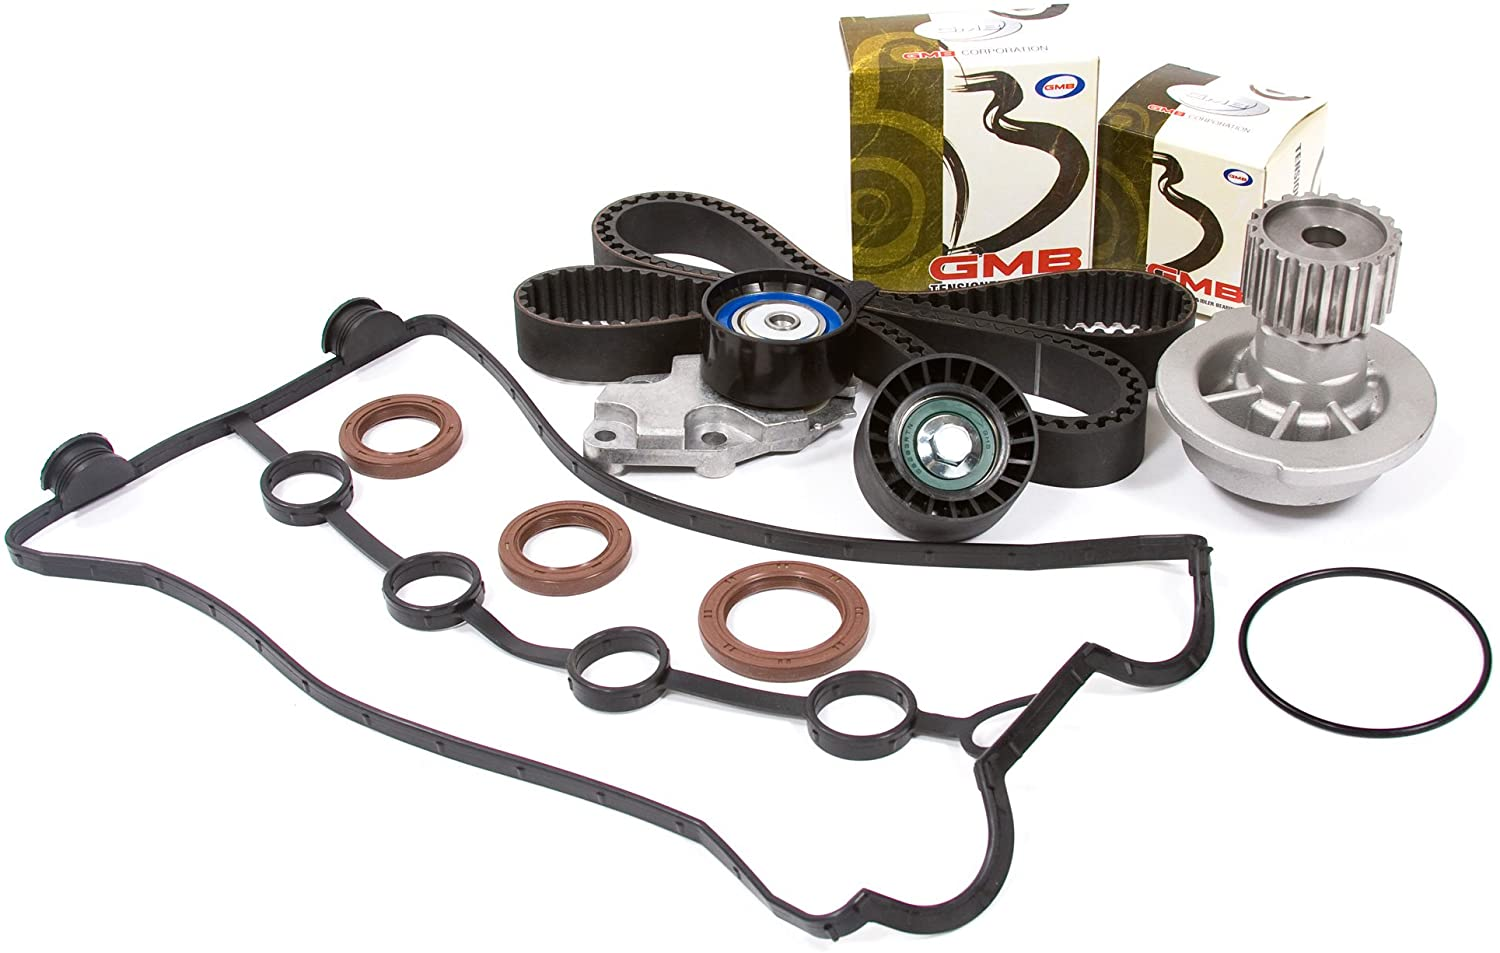 Evergreen TBK335VCT Compatible With 04-08 Chevrolet Aveo 1.6L E-TEC II VIN 6 Timing Belt Kit Valve Cover Gasket Water Pump